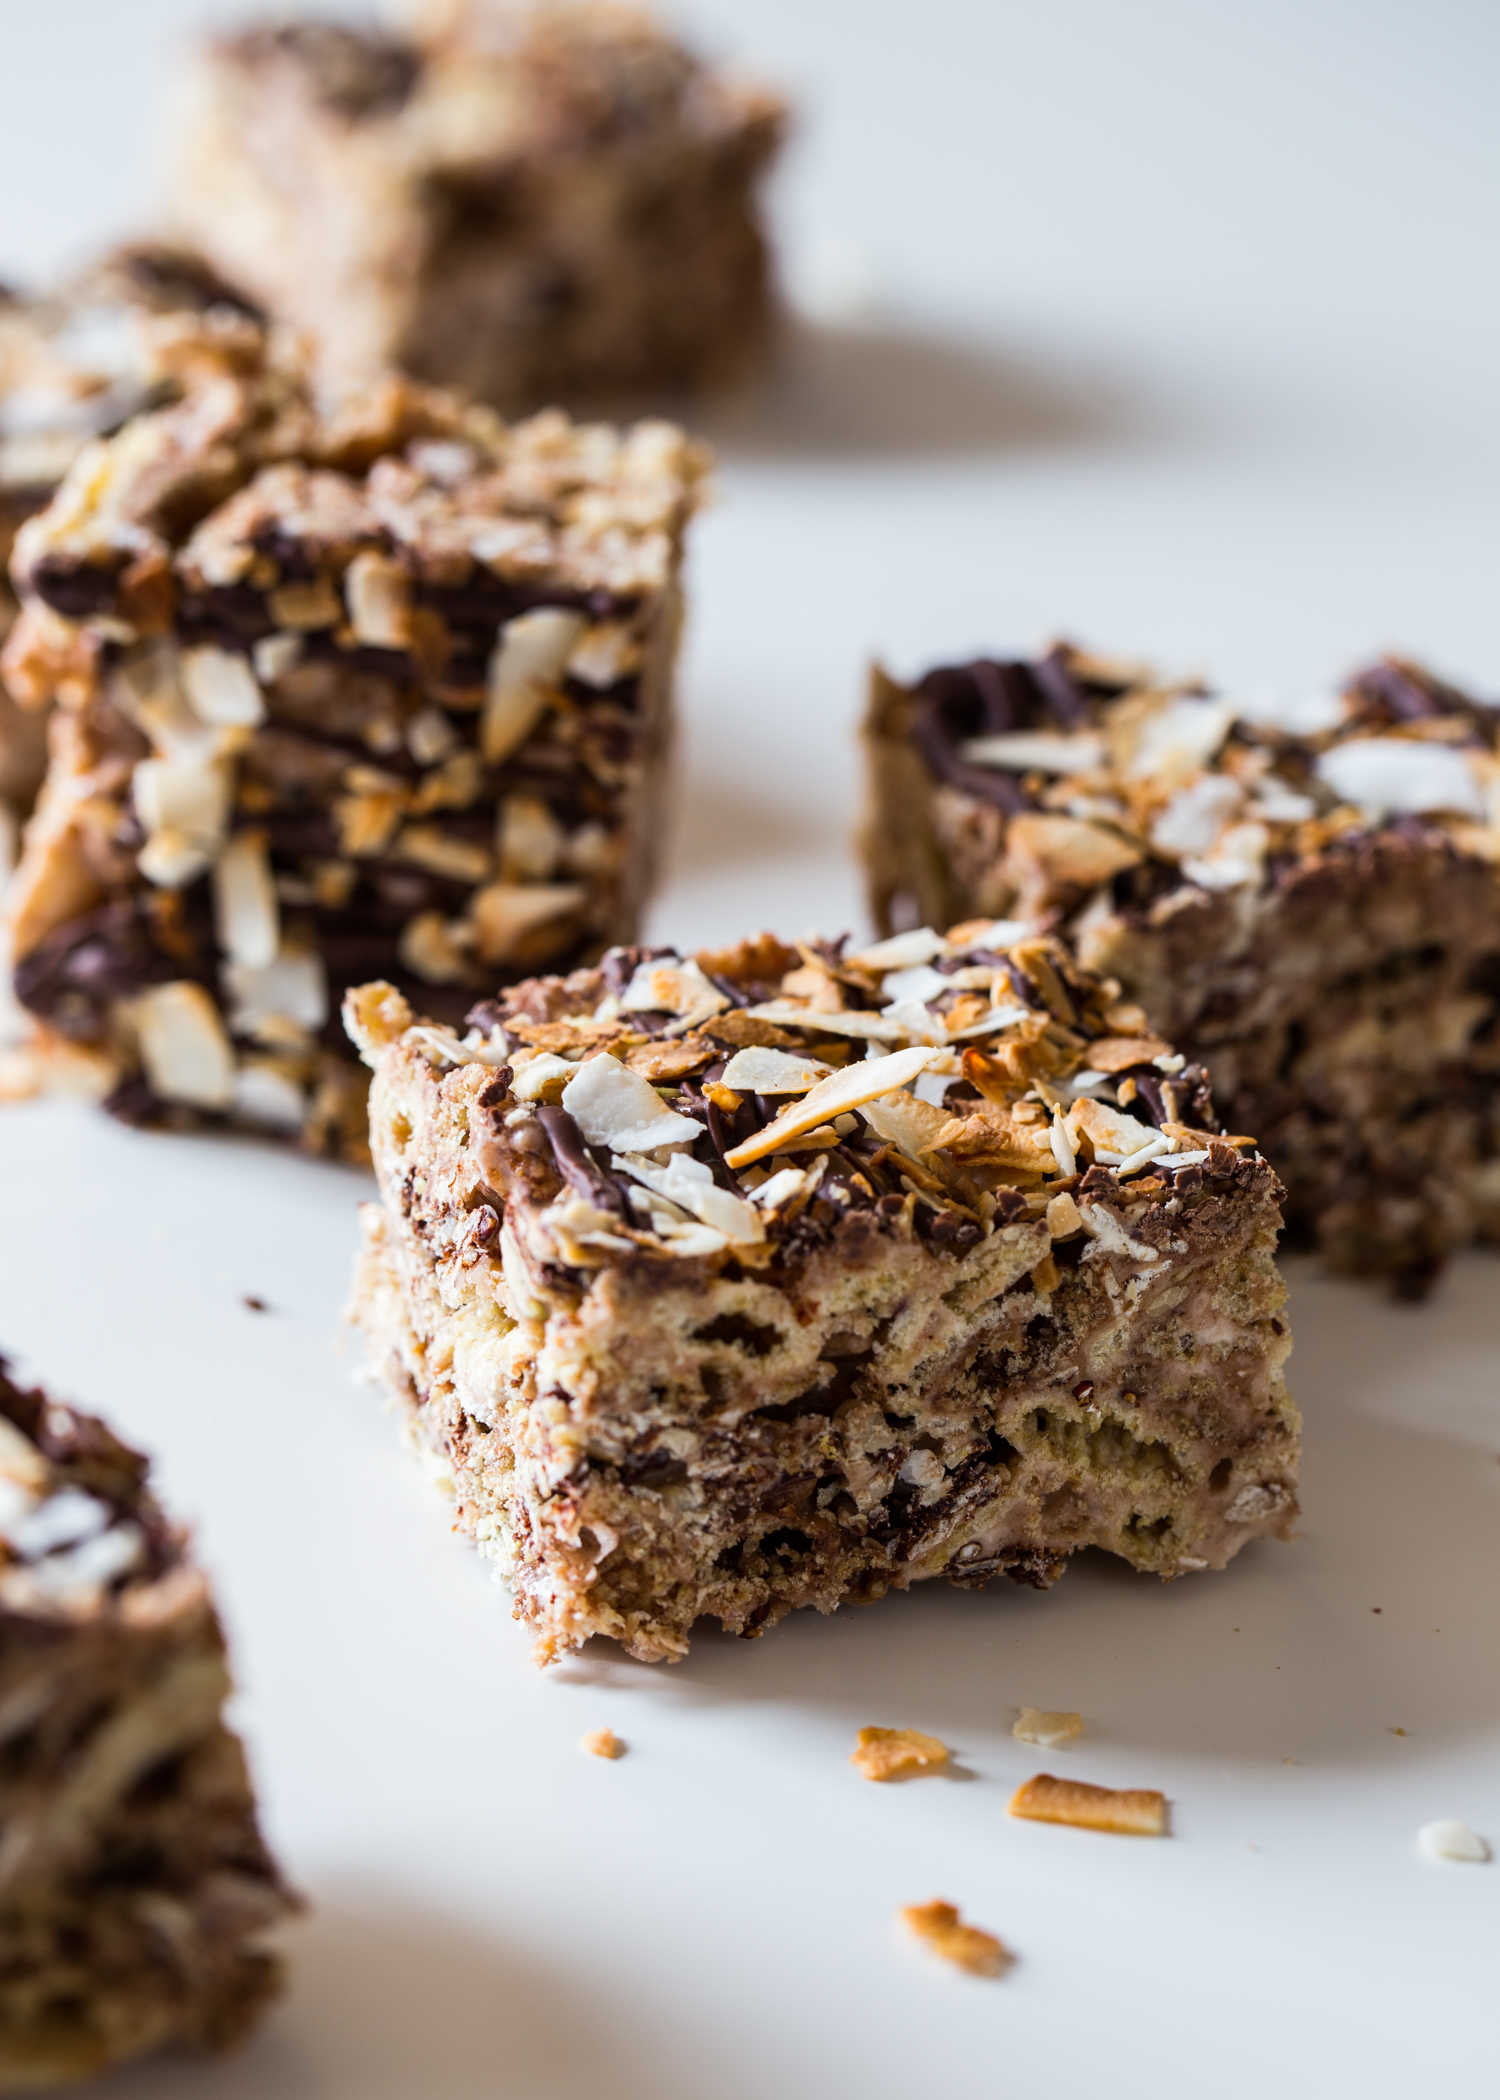 No bake Chocolate Coconut Marshmallow Treats have chocolate, toasted coconut and granola! #glutenfree